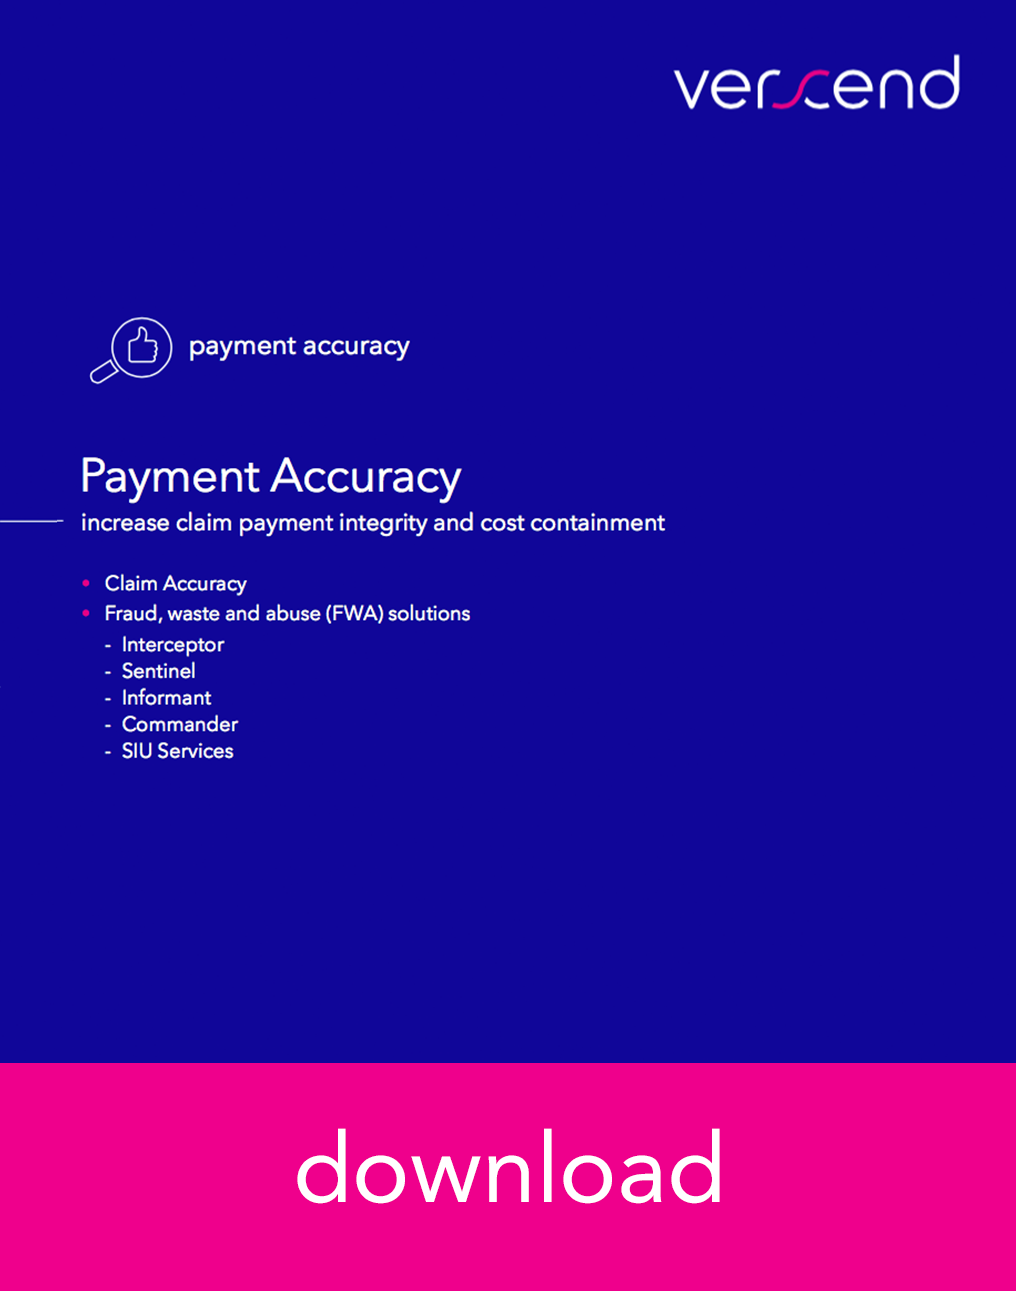 paymentaccuracy-cover-new.png